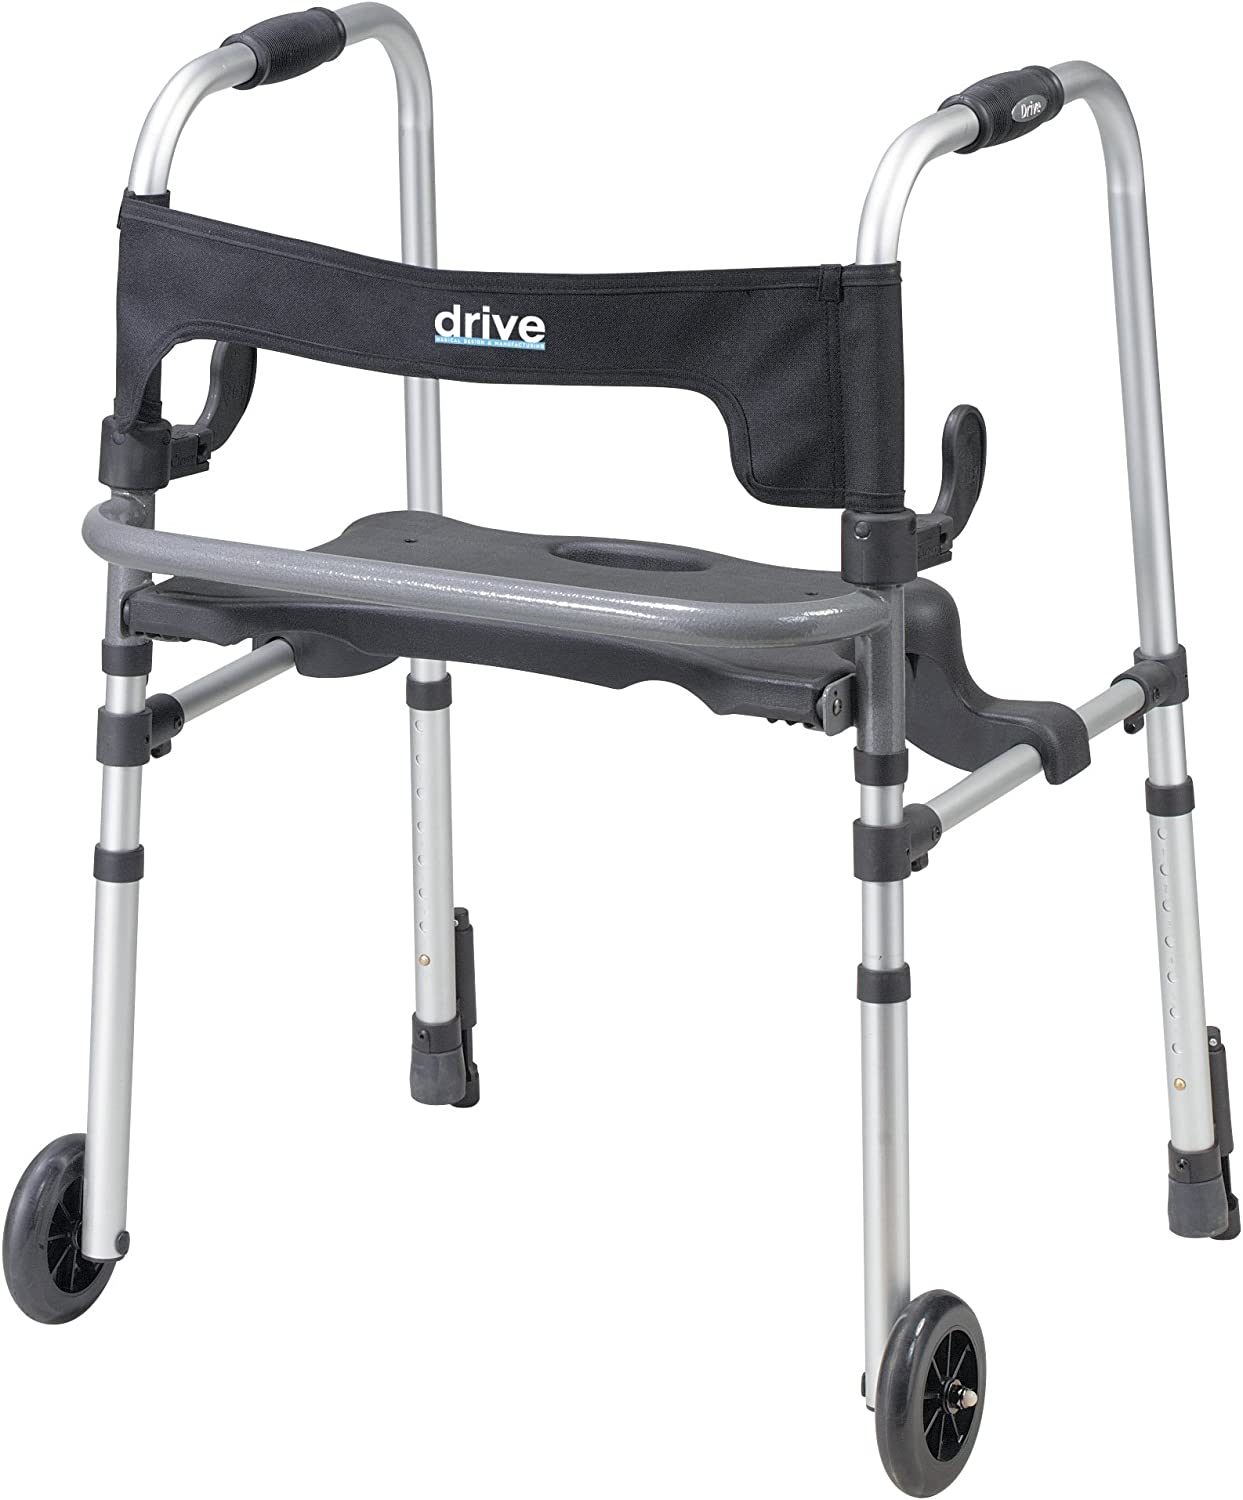 Drive Medical Clever-Lite LS Rollator Walker with Seat and Push Down Brakes, Gray 713ugSRzacLSL1500_